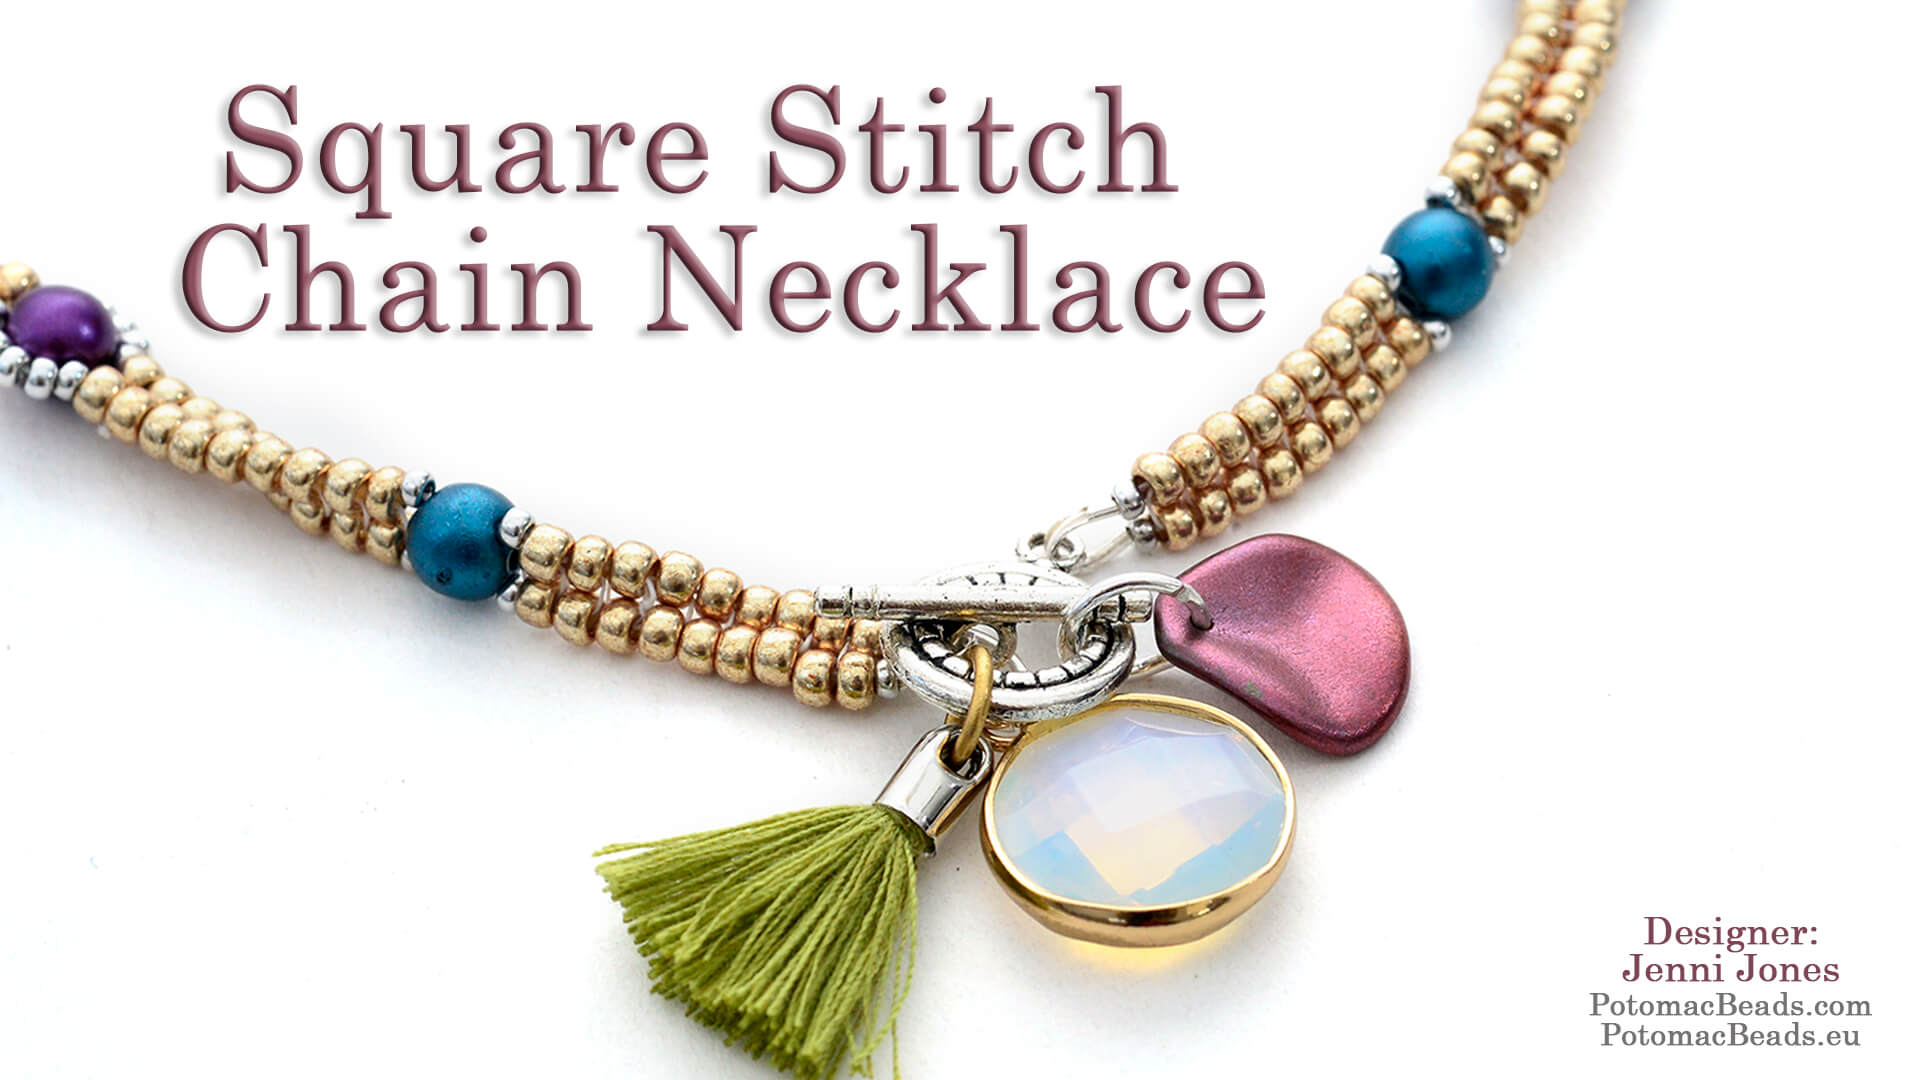 How to Bead / Videos Sorted by Beads / All Other Bead Videos / Square Stitch Chain Necklace Tutorial